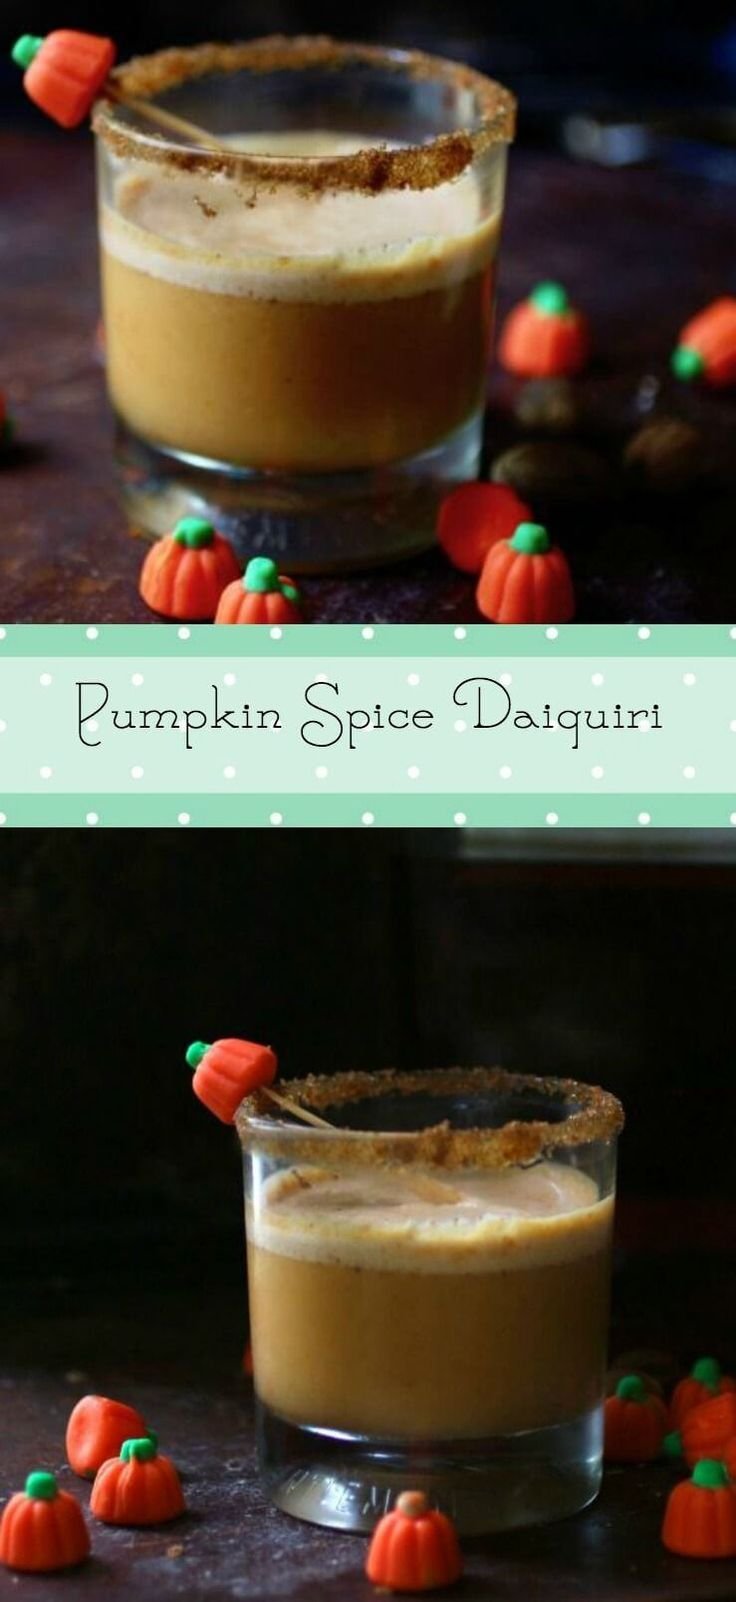 Pumpkin spice daiquiri cocktail recipe is the perfect fall beverage! Spiced rum and pumpin create a sweet, adults only drink! From RestlessChipotle.com